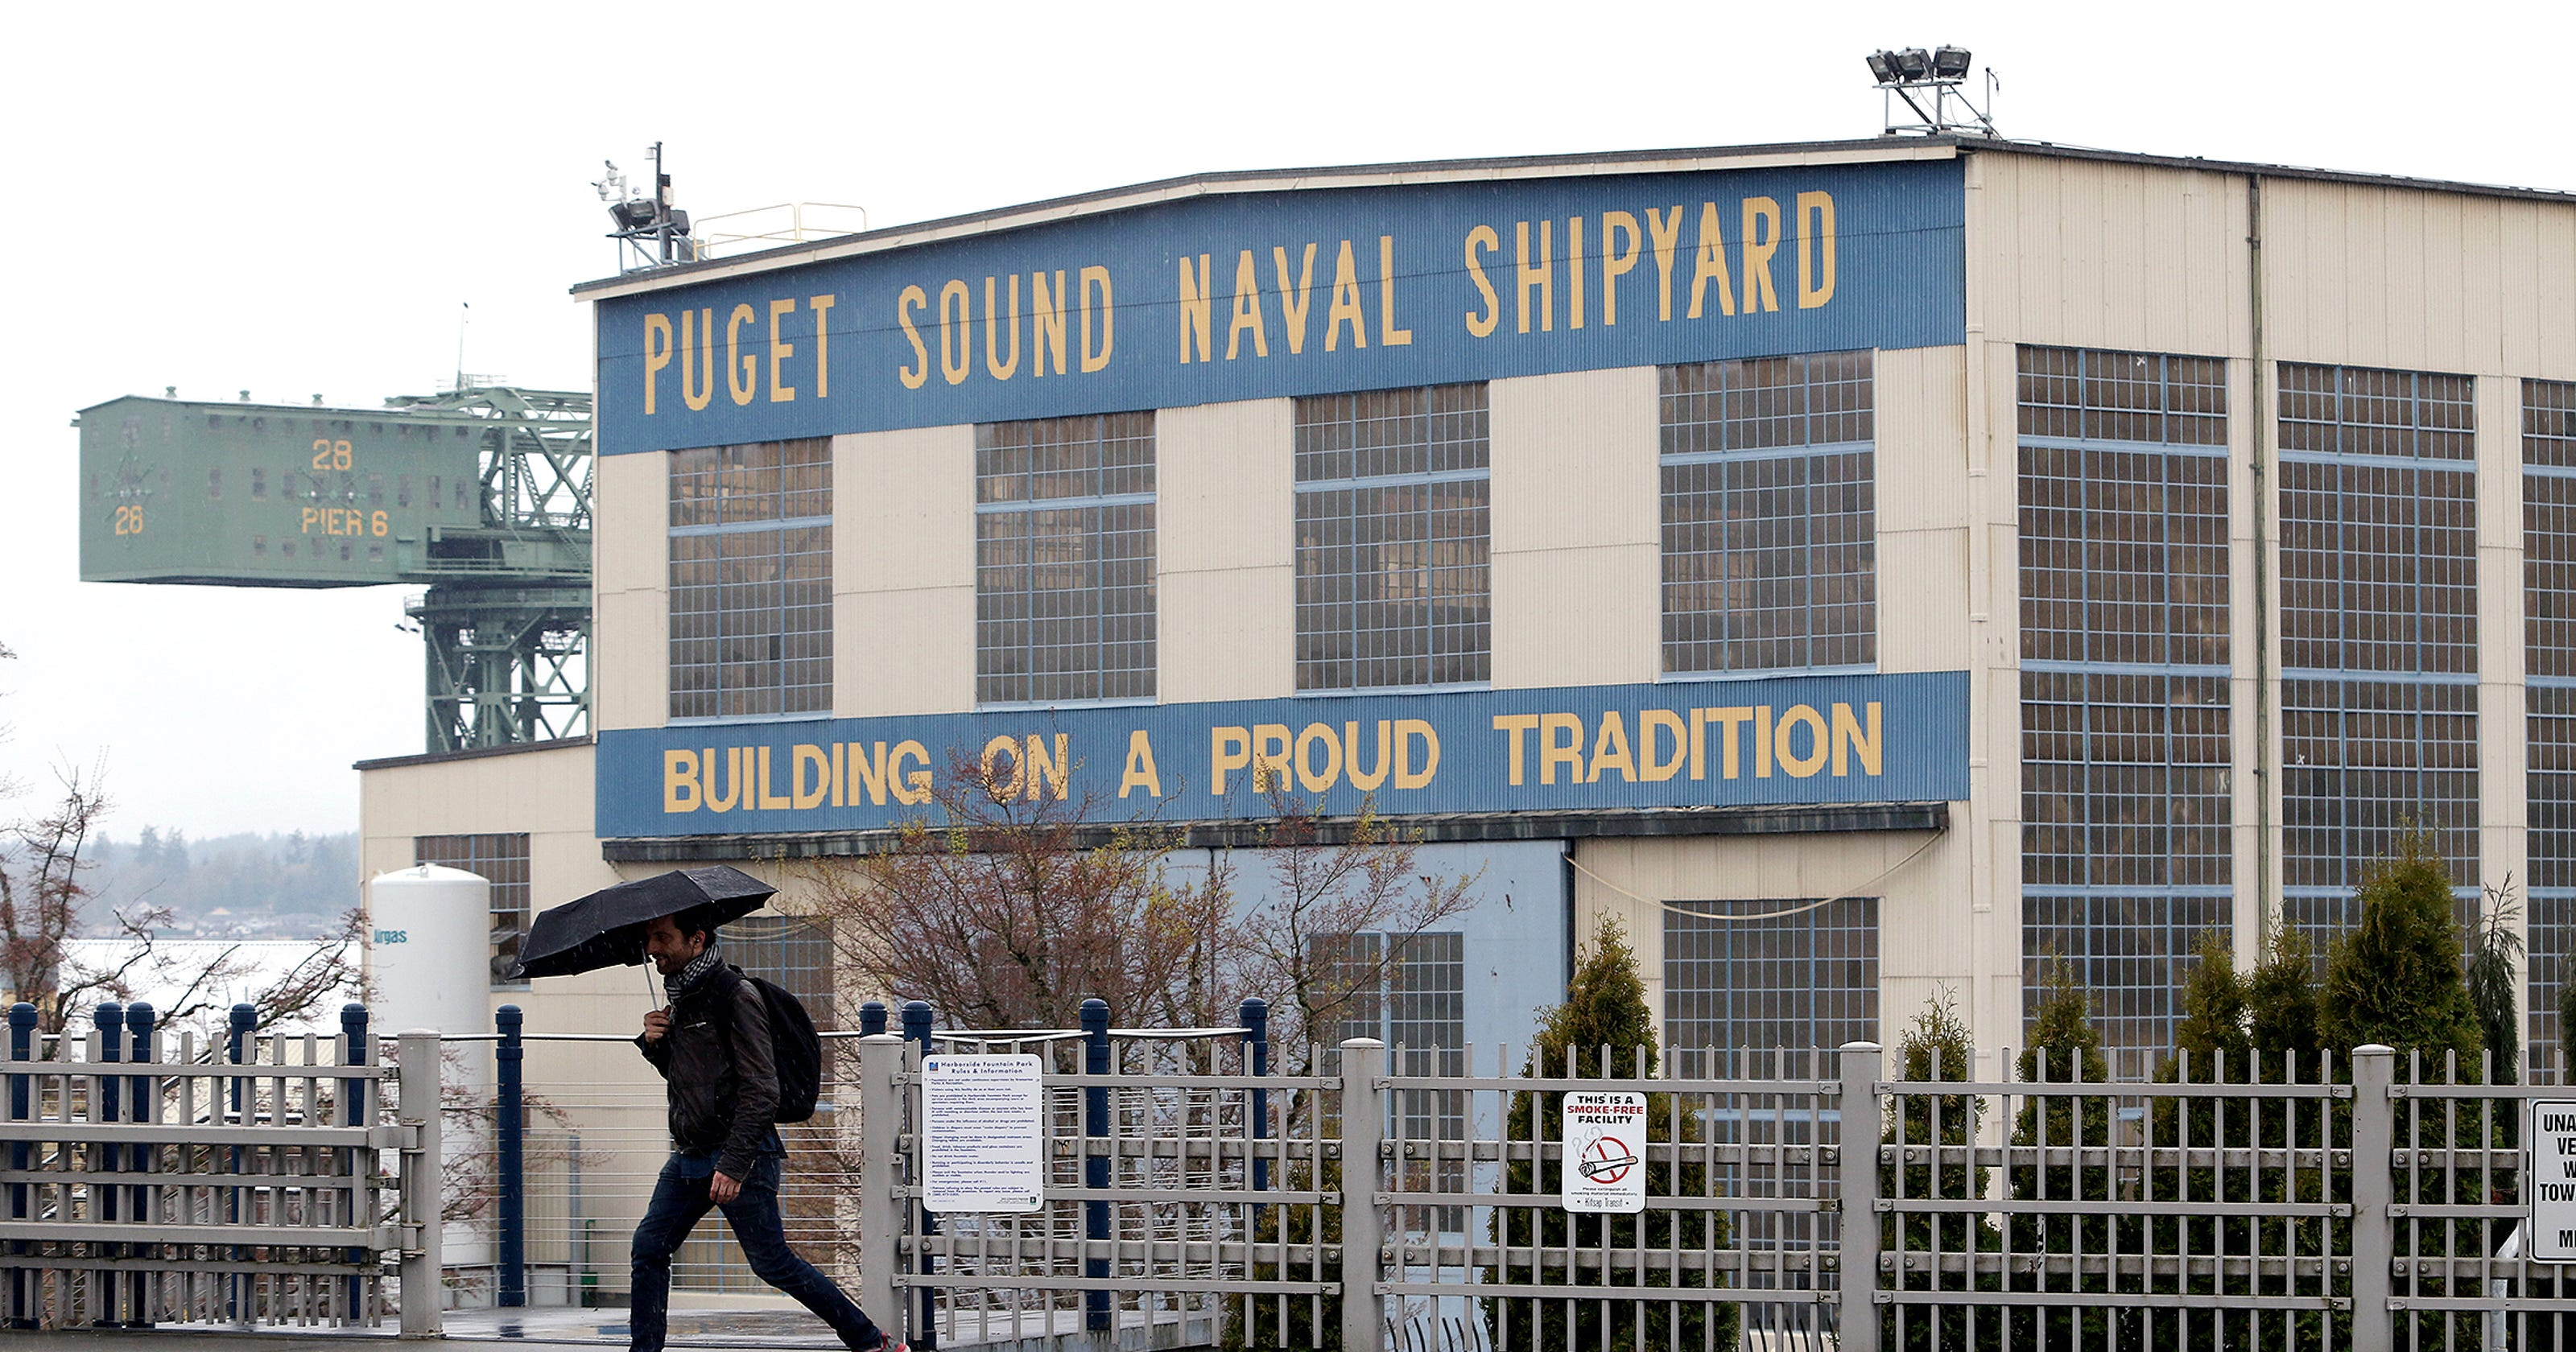 Puget Sound Naval Shipyard loses workplace safety recognition